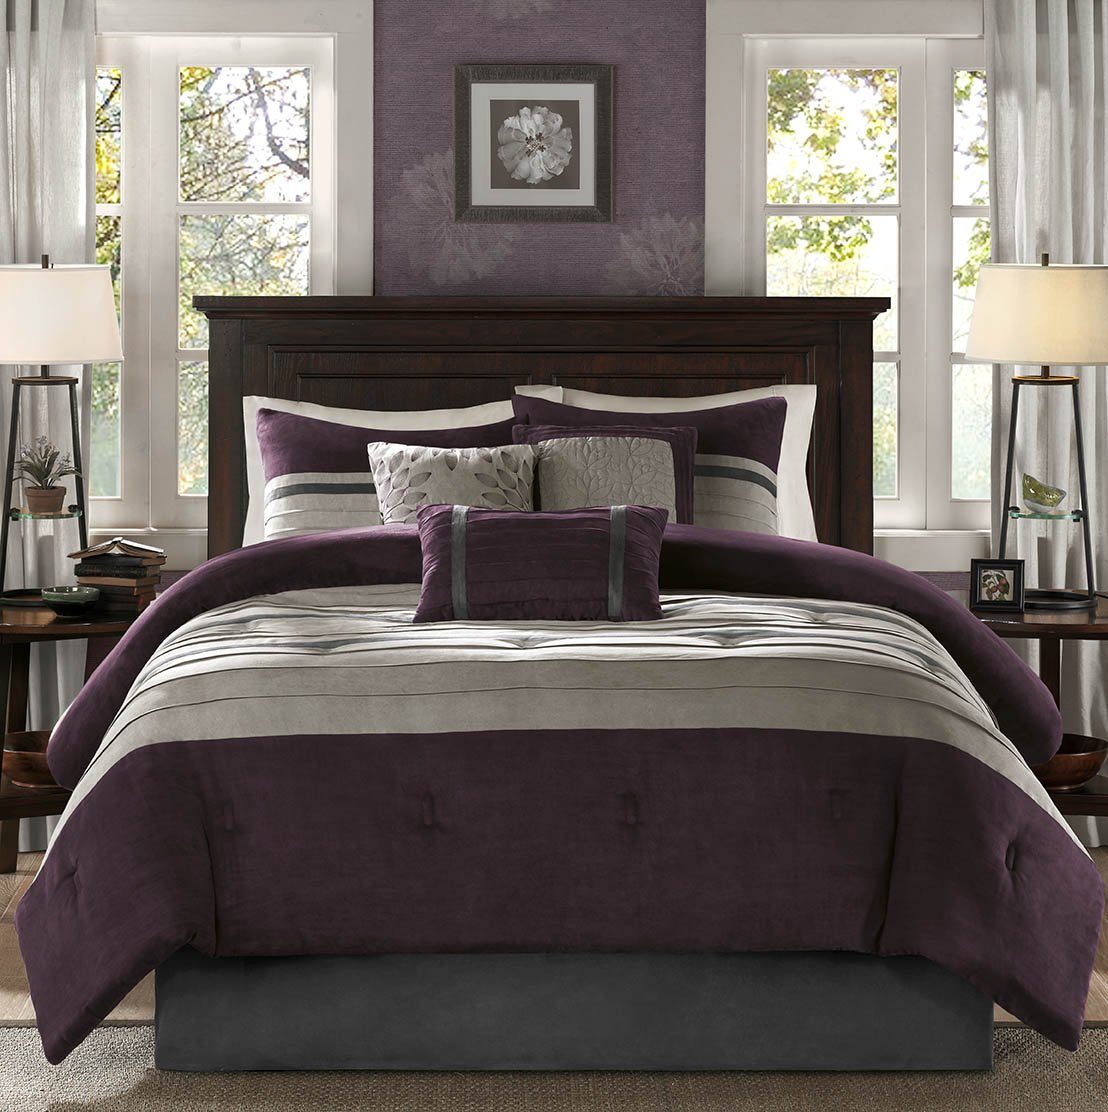 Comforter Set - Plum - California King